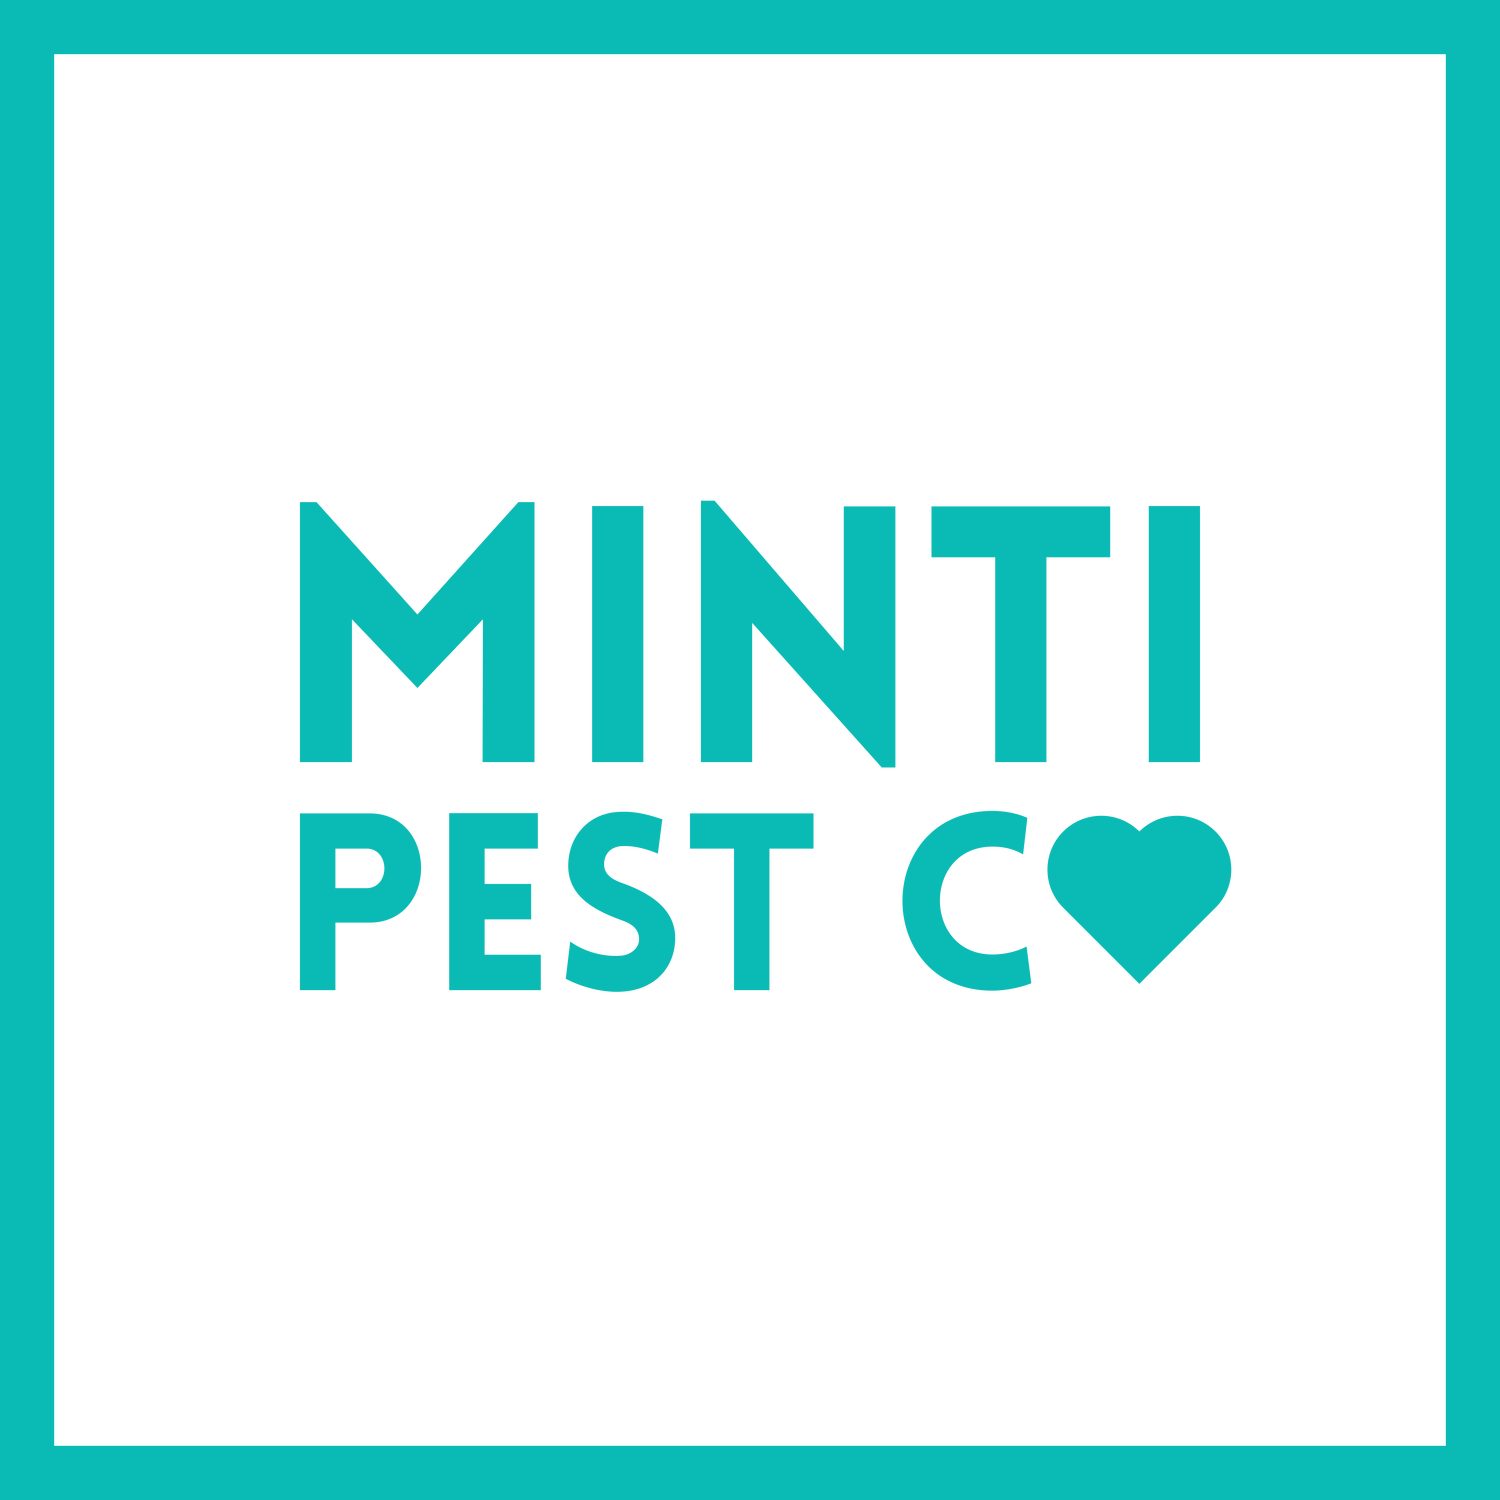 Minti Pest Co